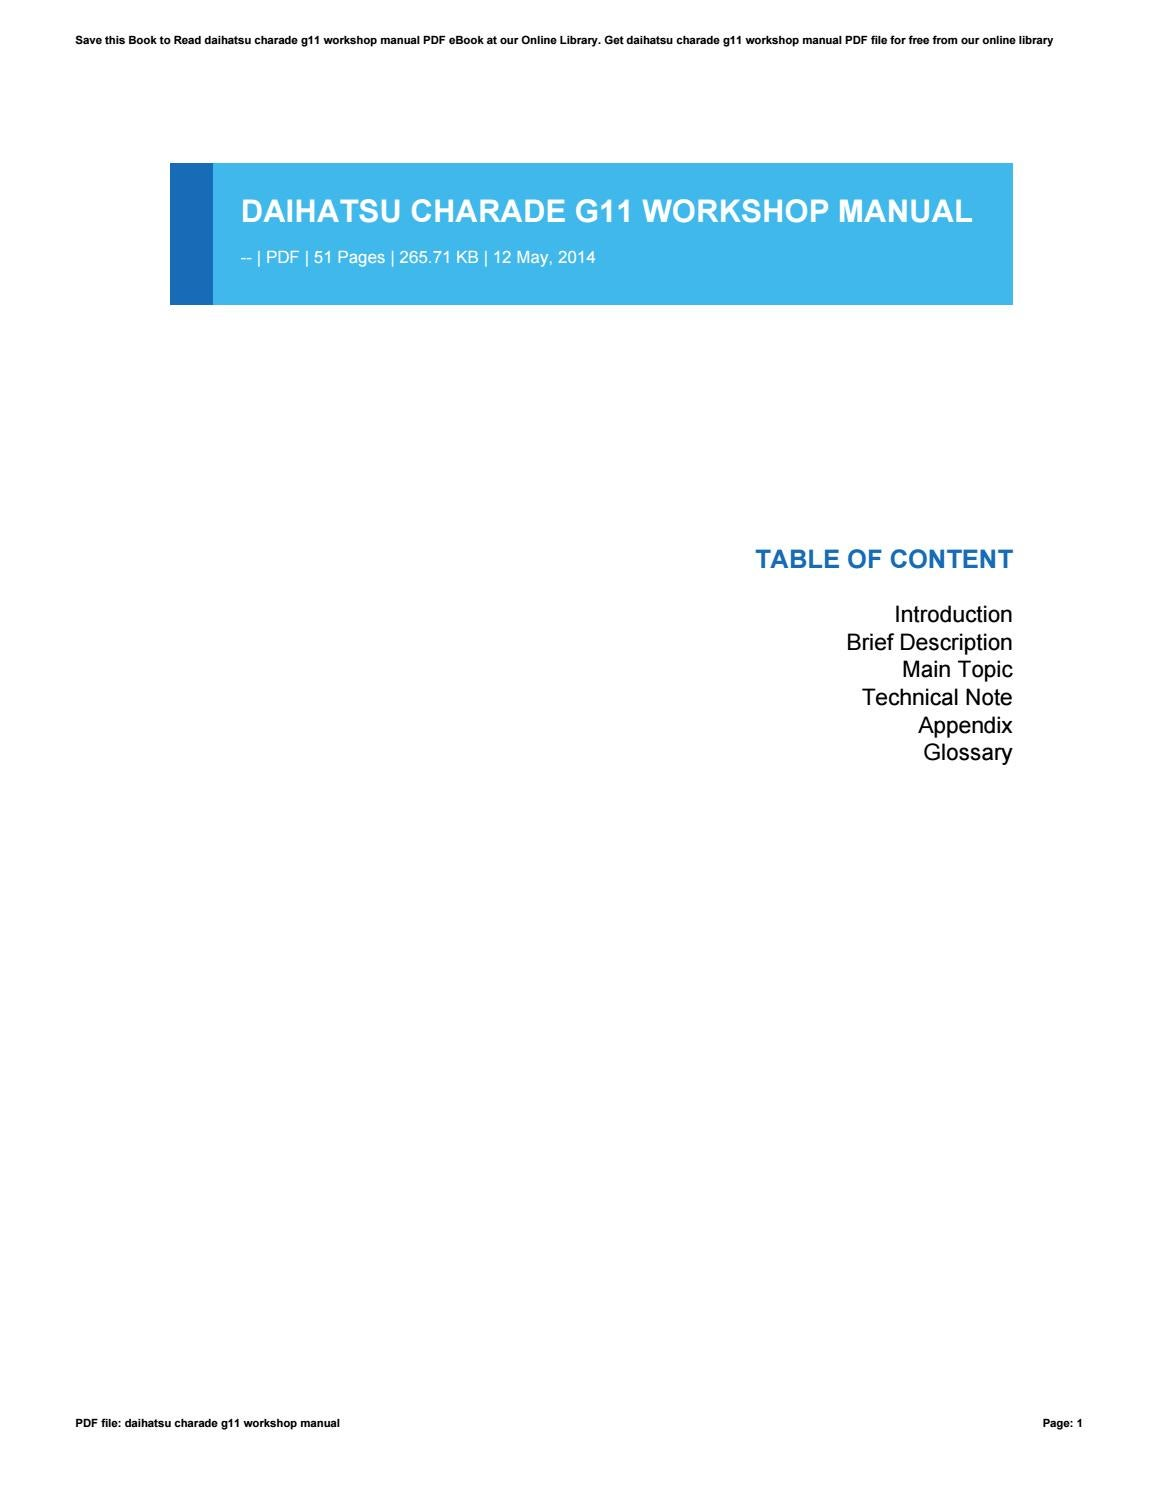 daihatsu charade g11 workshop manual by pejovideomaker9 issuu Daihatsu Bego